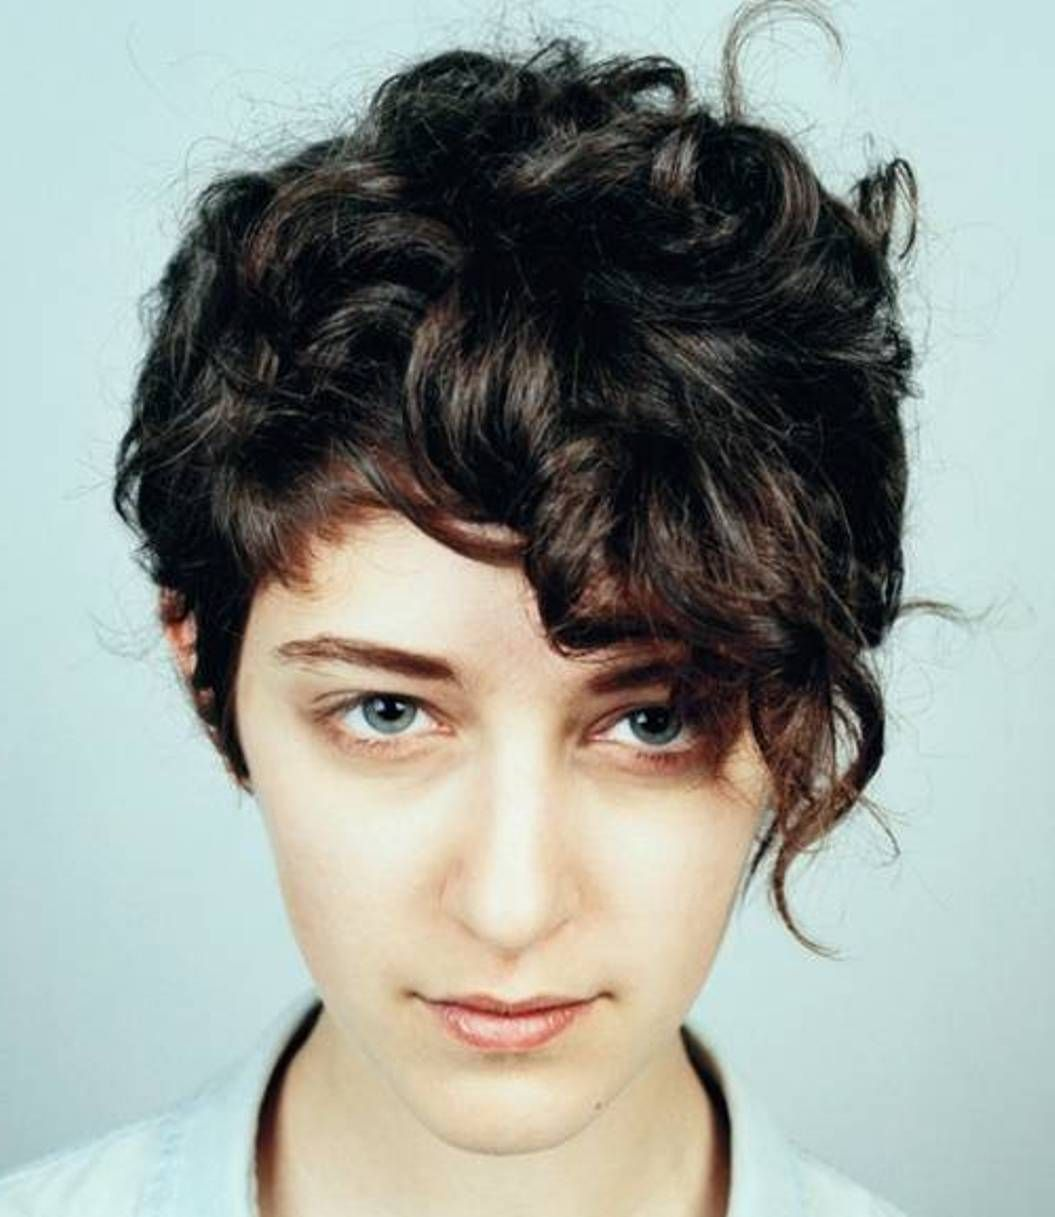 50 Cute Short Hairstyles For Women With Thick Hair Fave Hairstyles Curly Pixie Hairstyles Haircuts For Curly Hair Short Curly Haircuts